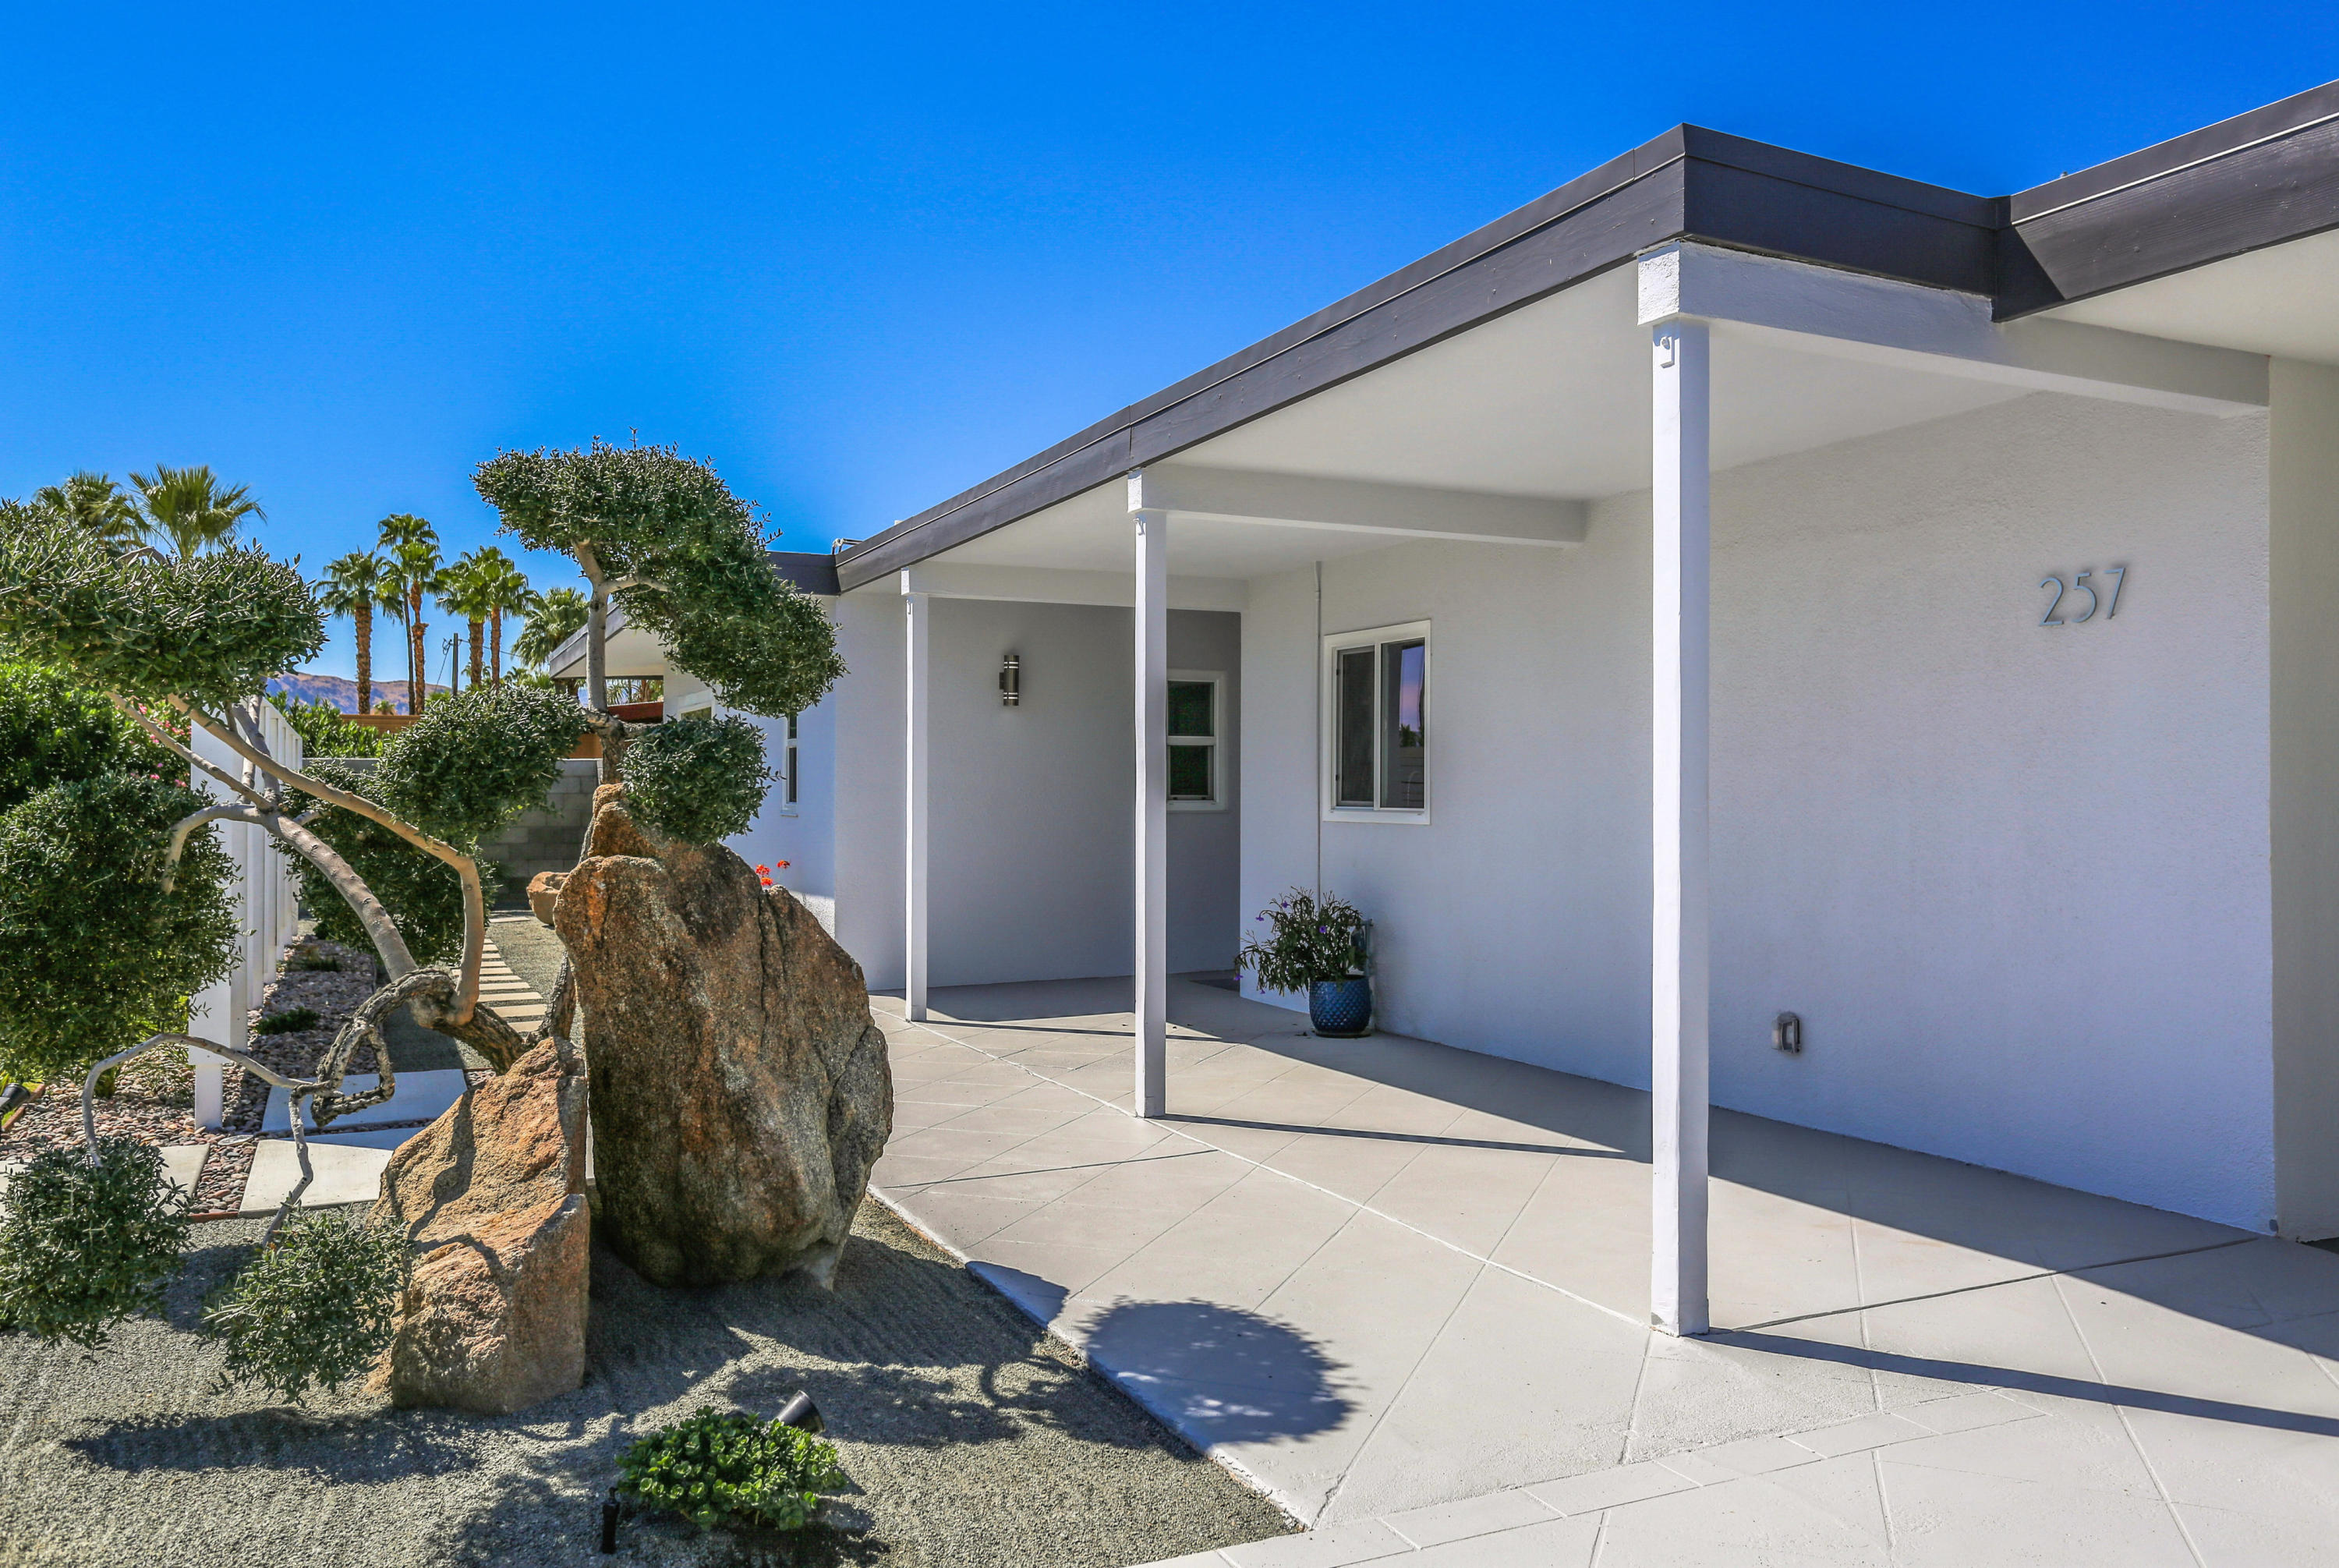 257 NW Cerritos Drive, Palm Springs, California 92262, 3 Bedrooms Bedrooms, ,2 BathroomsBathrooms,Residential,For Sale,257 NW Cerritos Drive,219030006